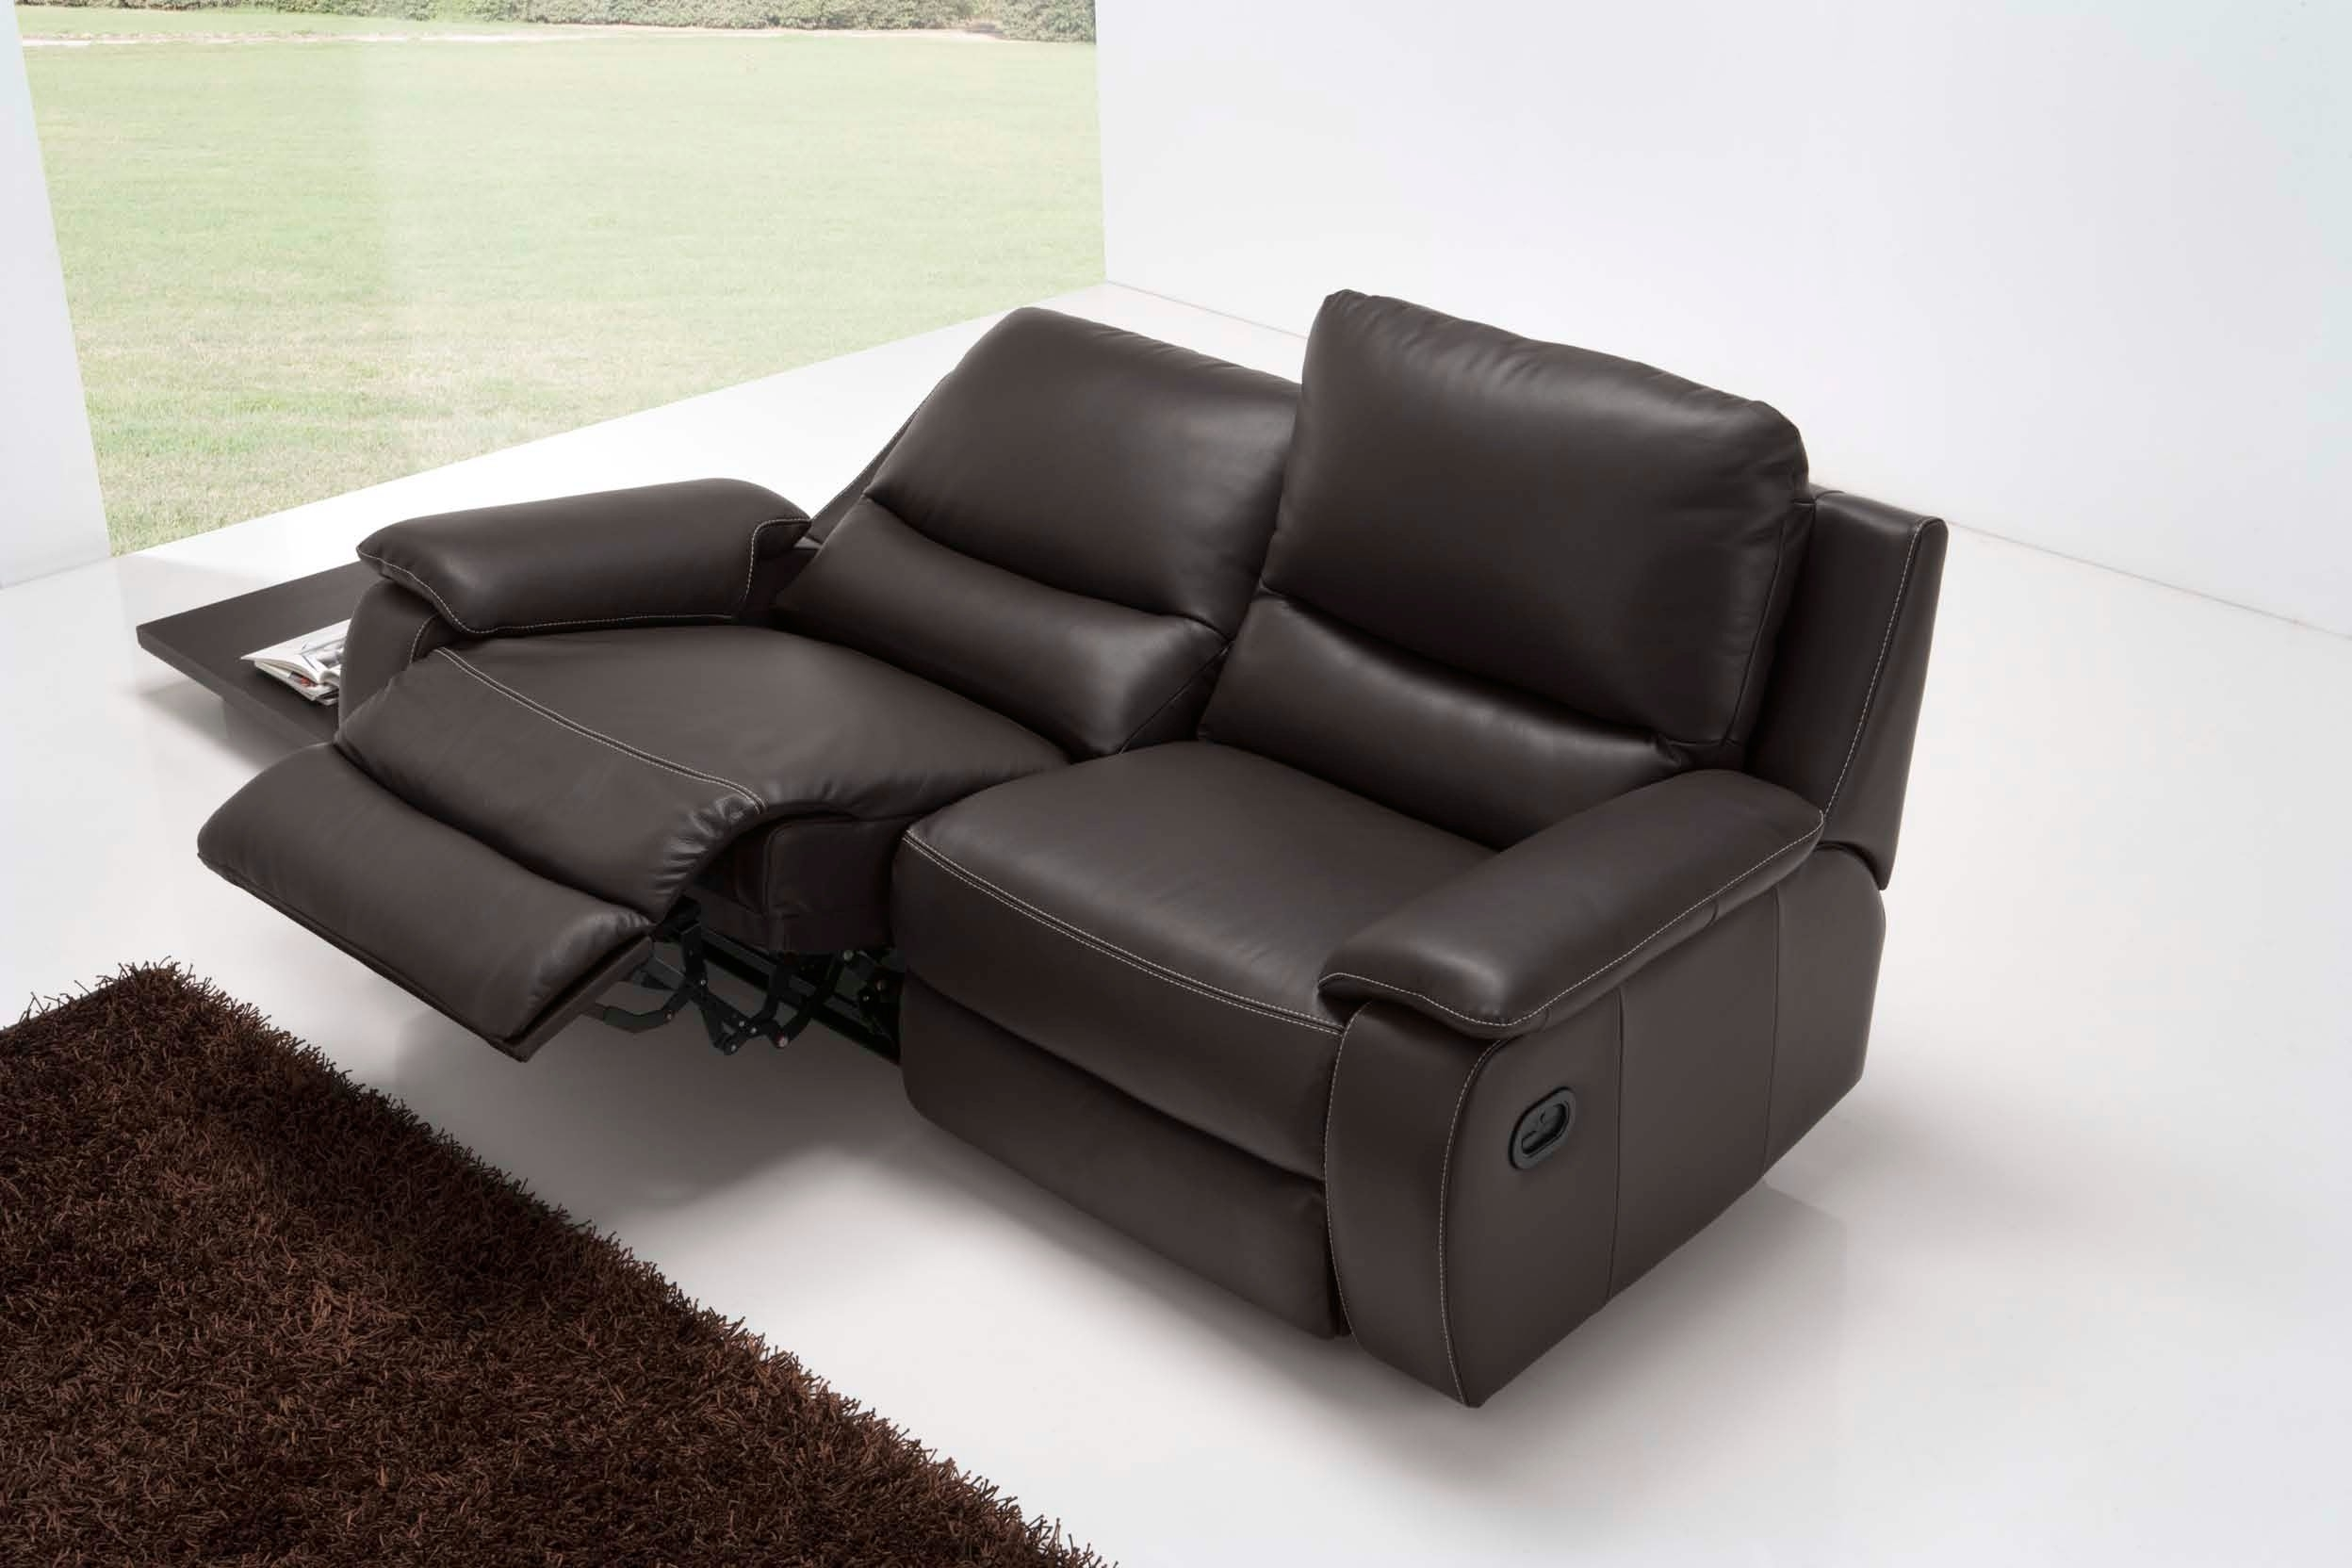 3 Seater Recliner Sofa Best Price 3 Seat Reclining Sofa With Cup With Regard To 2018 2 Seat Recliner Sofas (View 4 of 15)